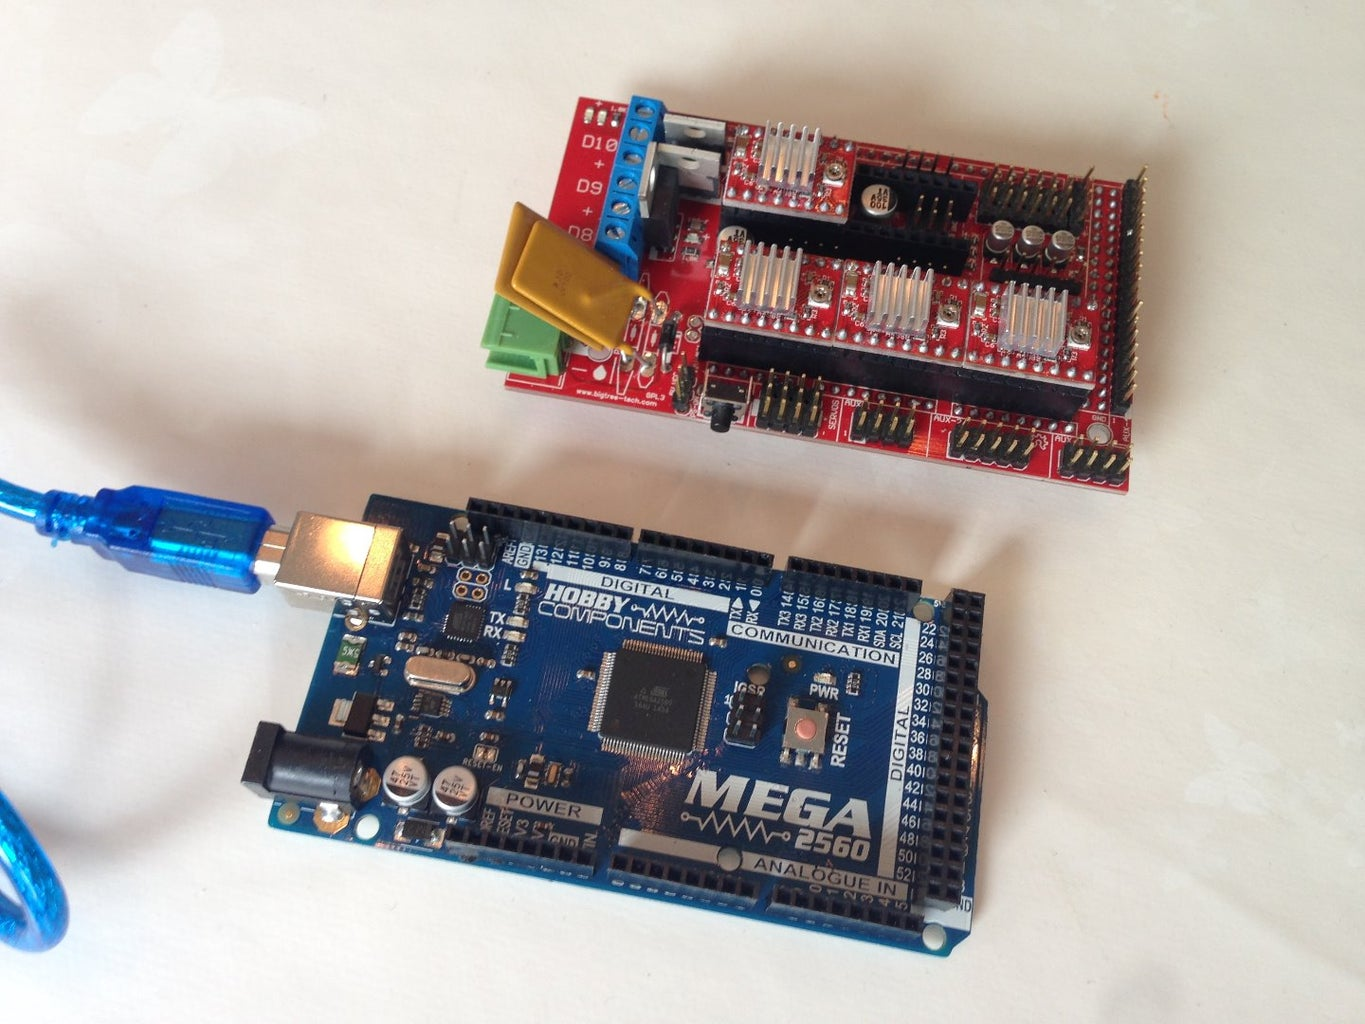 Assemble/Firmware on Mega 2560 and Ramps 1.4 Board